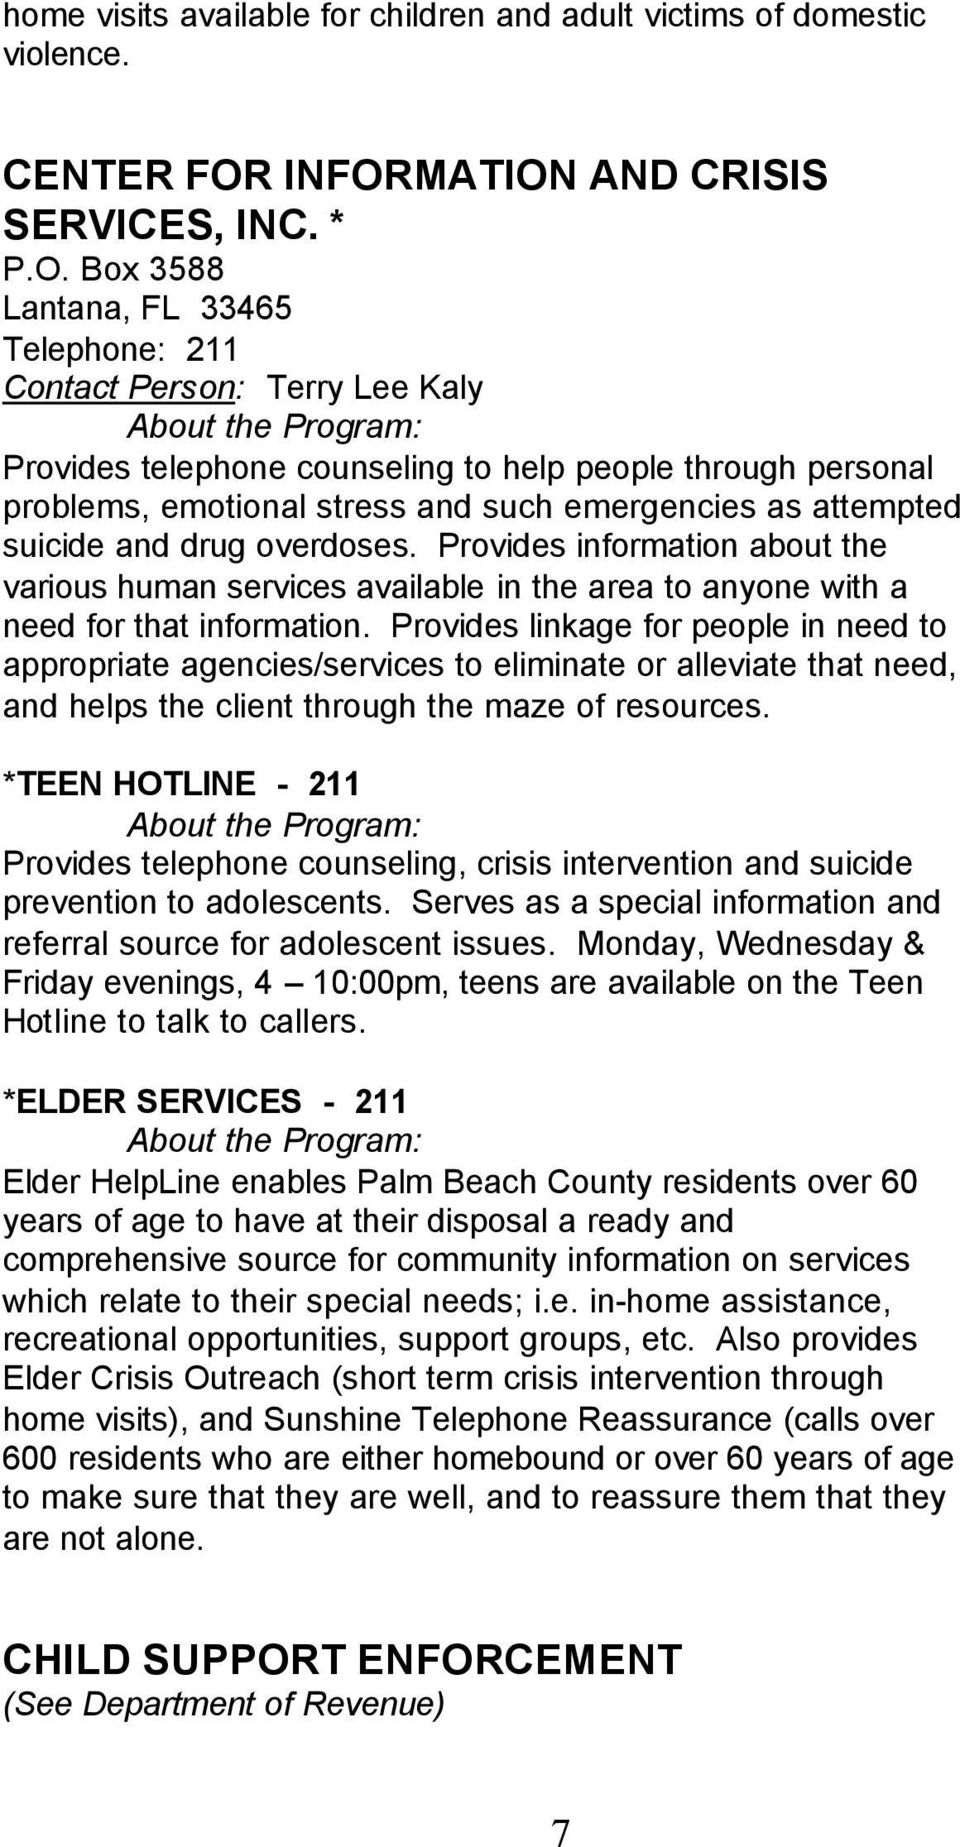 stress and such emergencies as attempted suicide and drug overdoses. Provides information about the various human services available in the area to anyone with a need for that information.